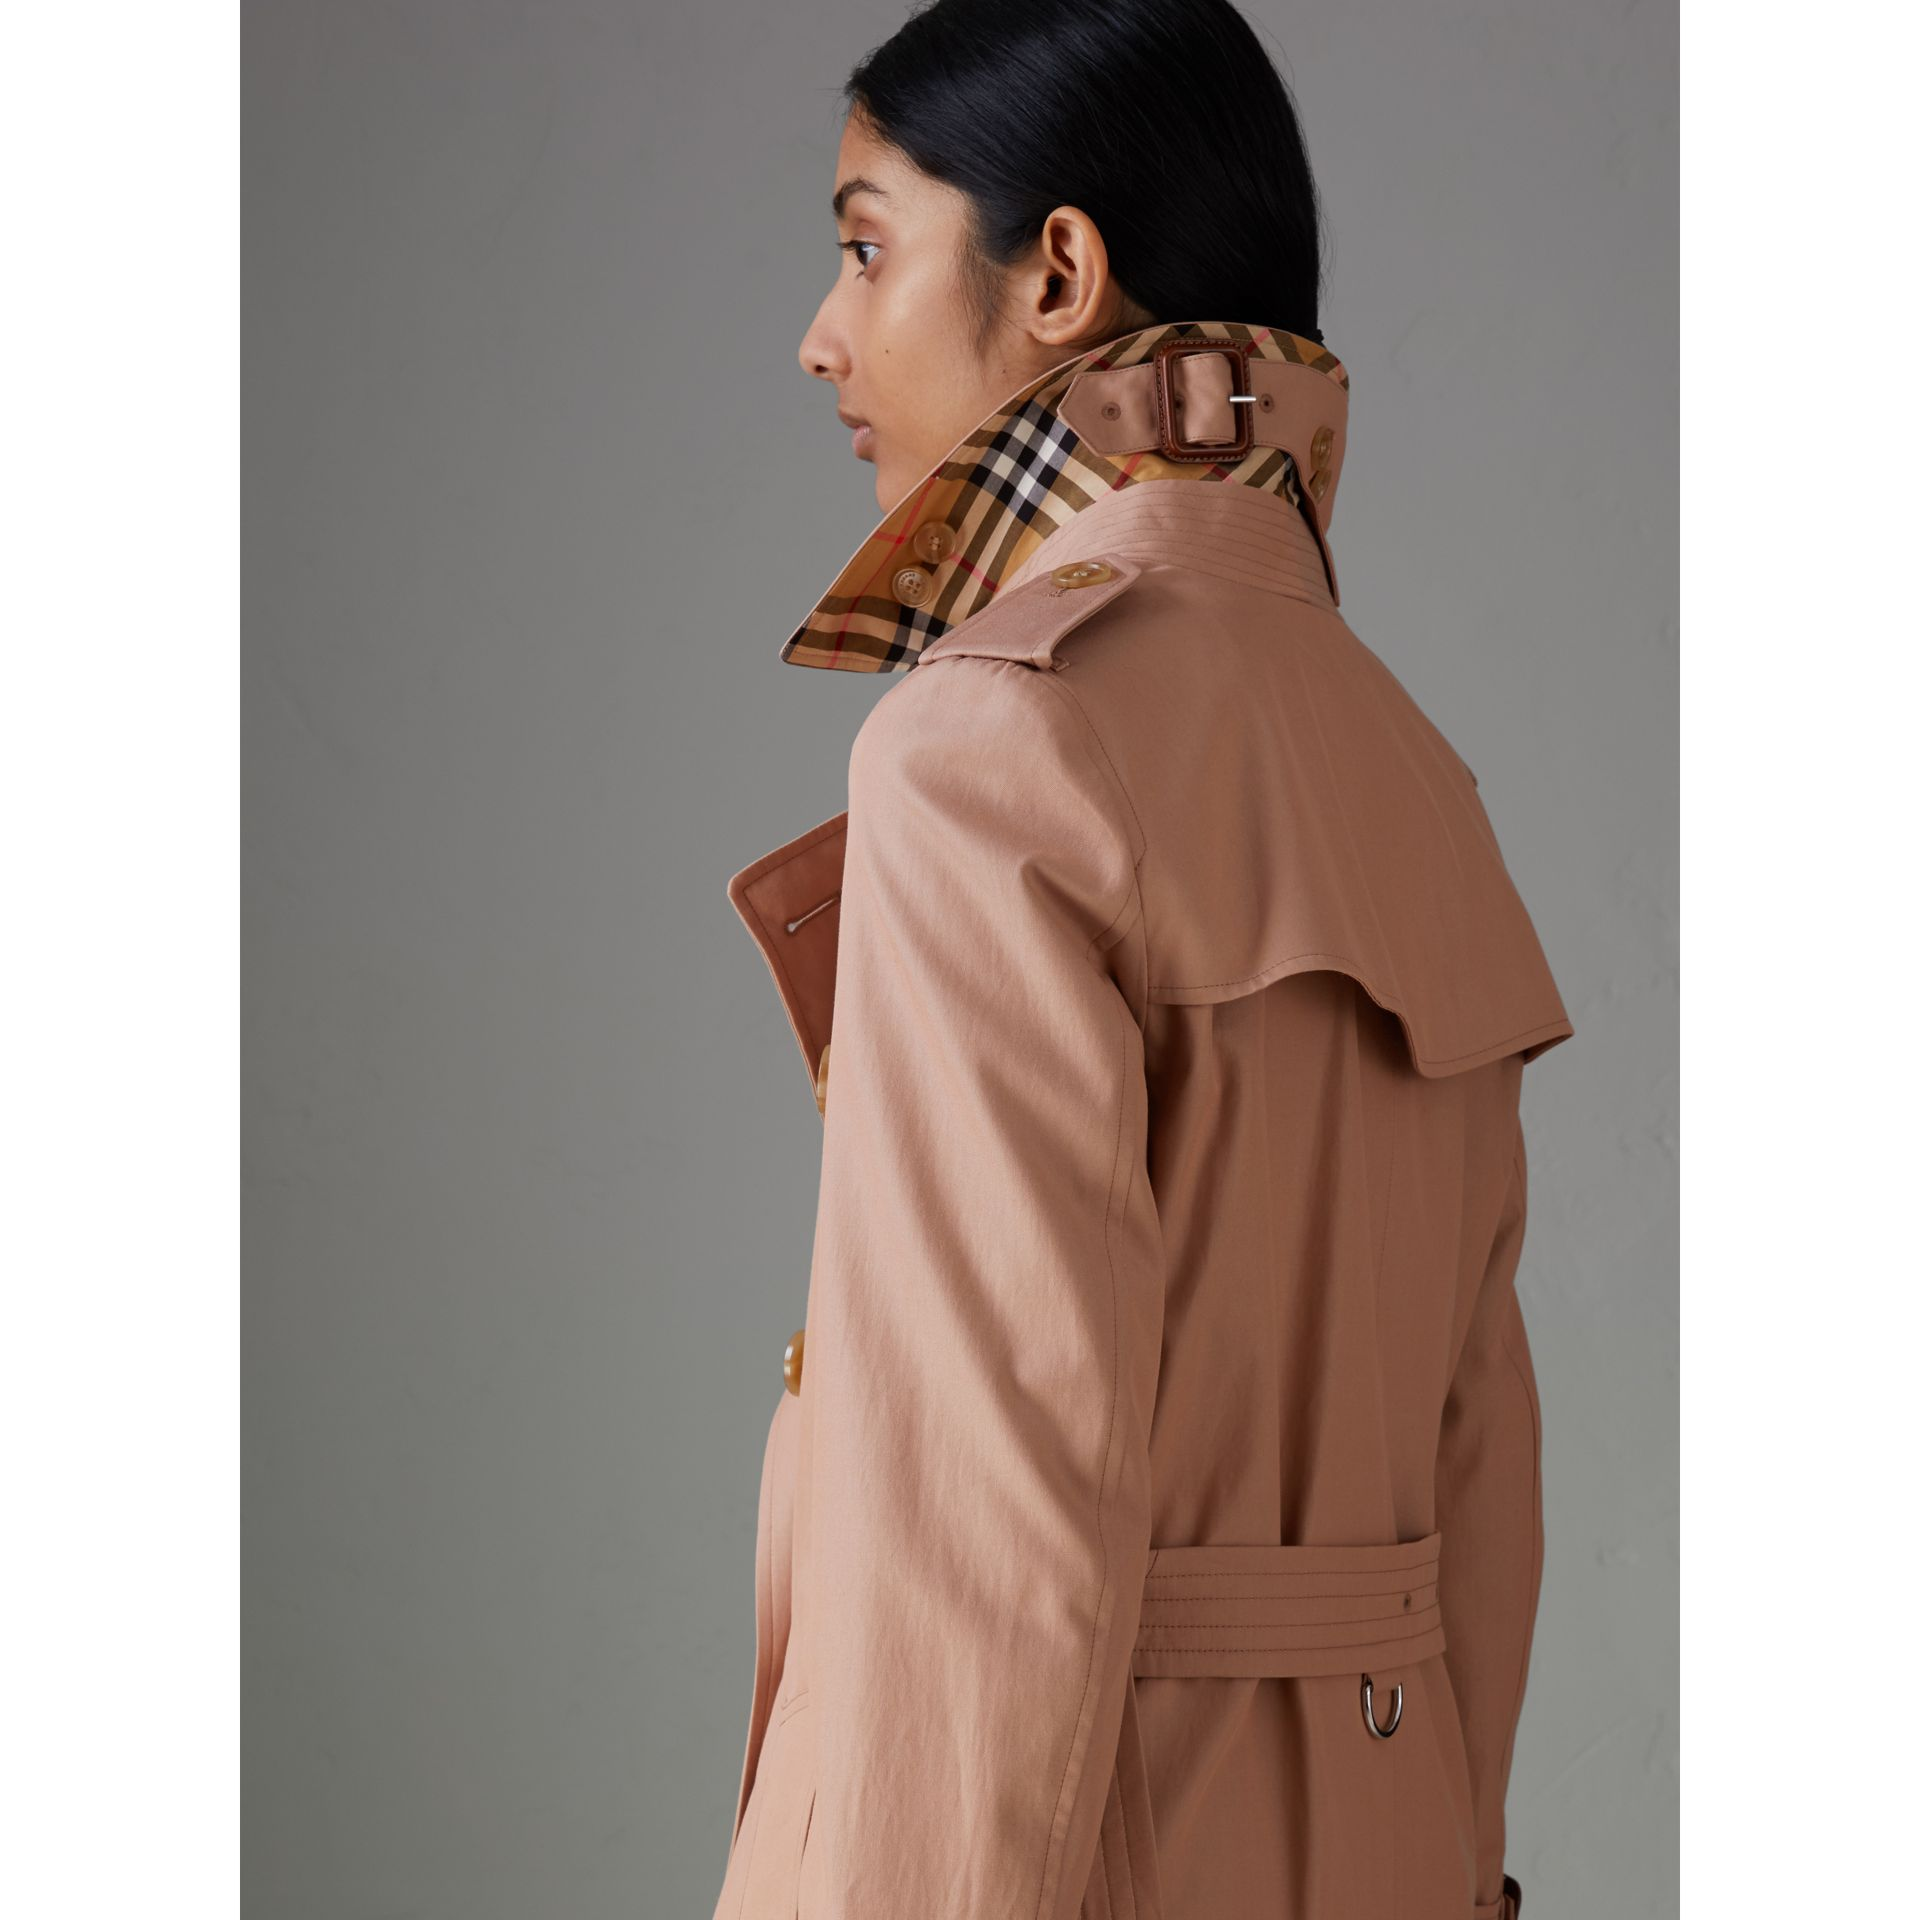 Tropical Gabardine Trench Coat in Pink Apricot - Women | Burberry Australia - gallery image 4